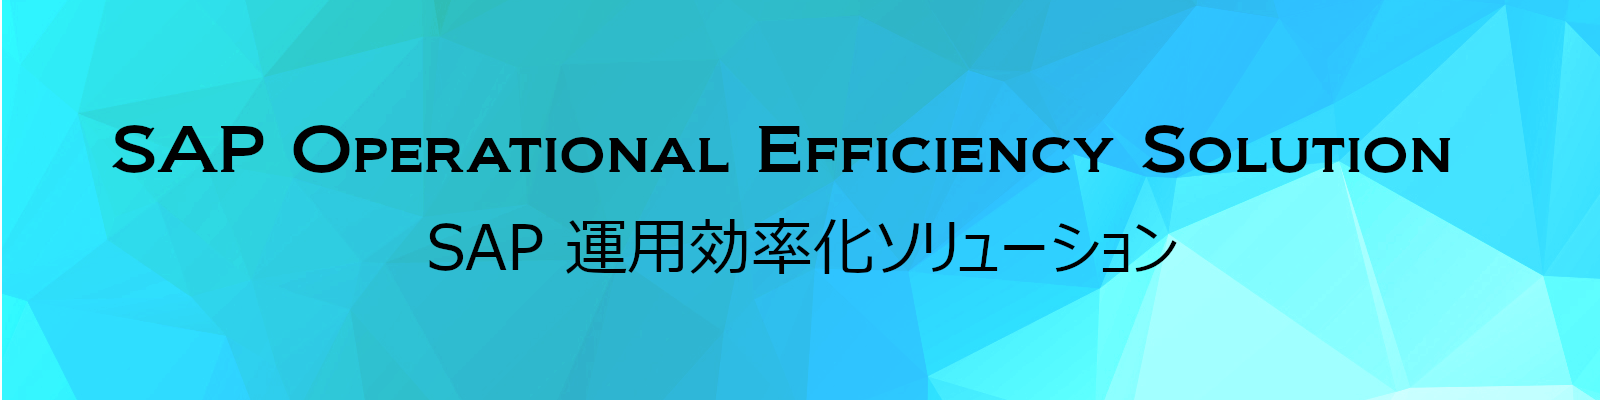 SAP operational efficiency solution -SAP運用効率化ソリューション-